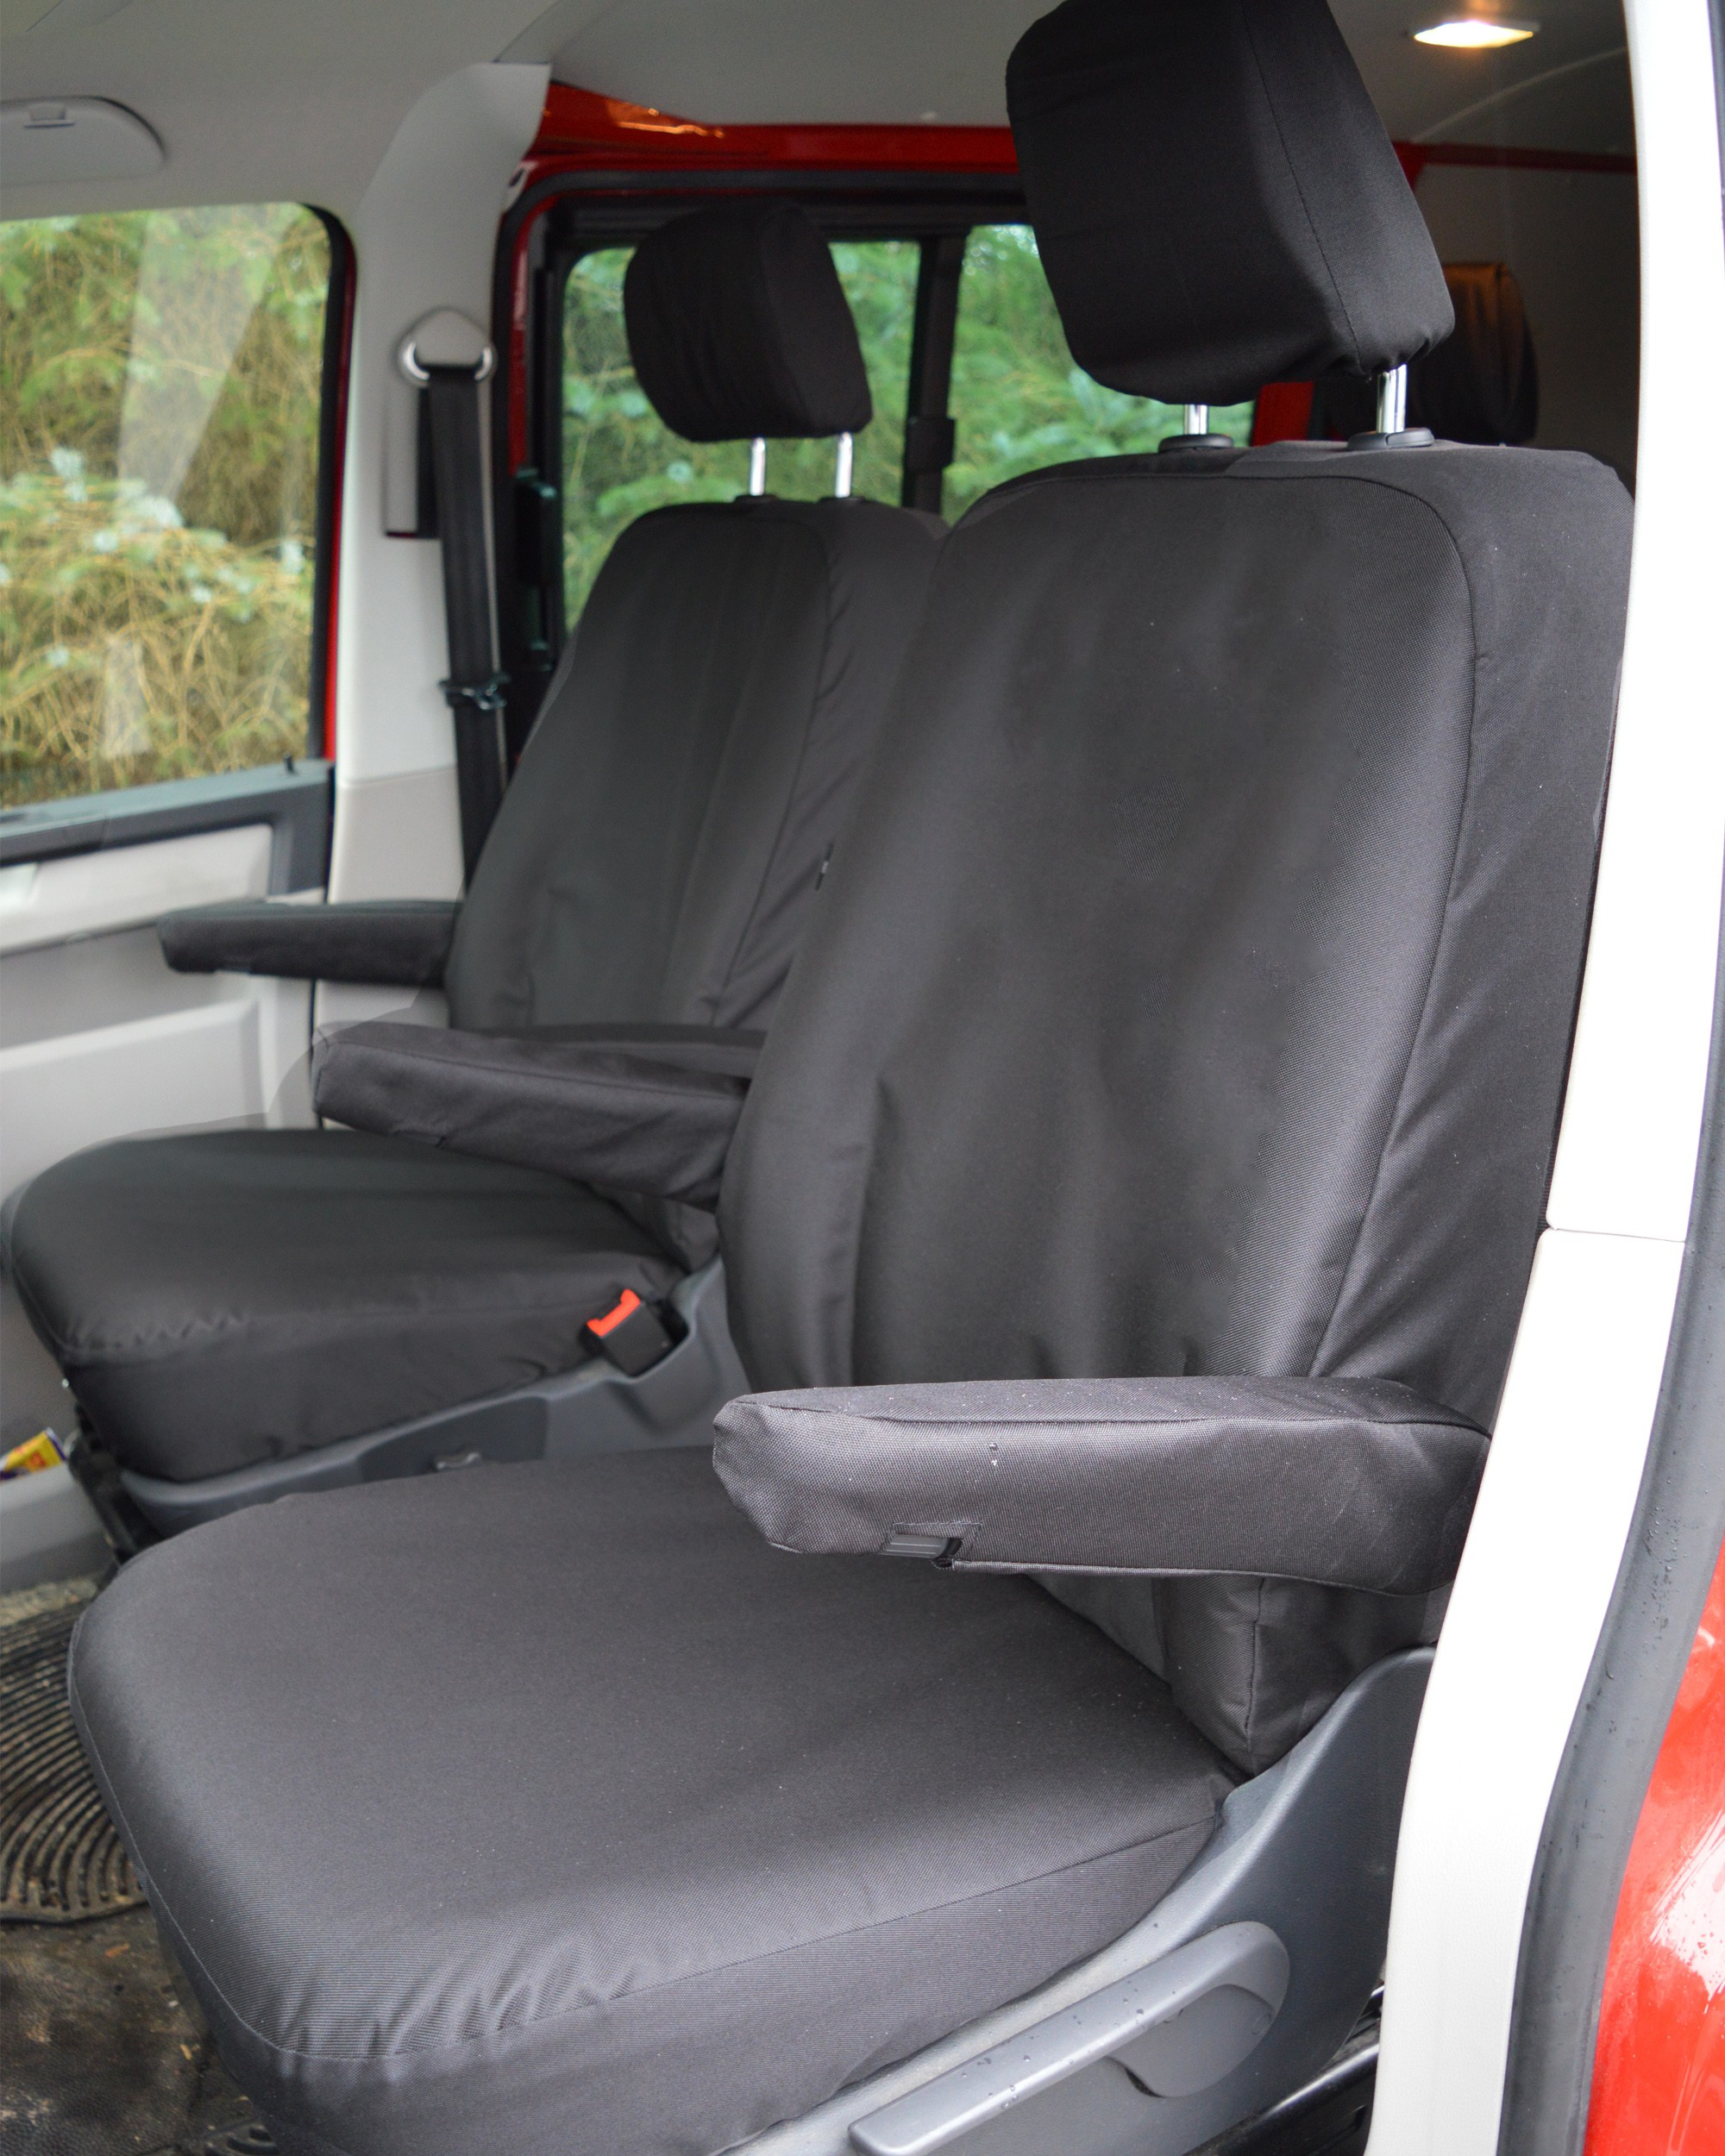 VW Transporter T5 Kombi with Captain Seats Heavy Duty Van Seat Covers - Black